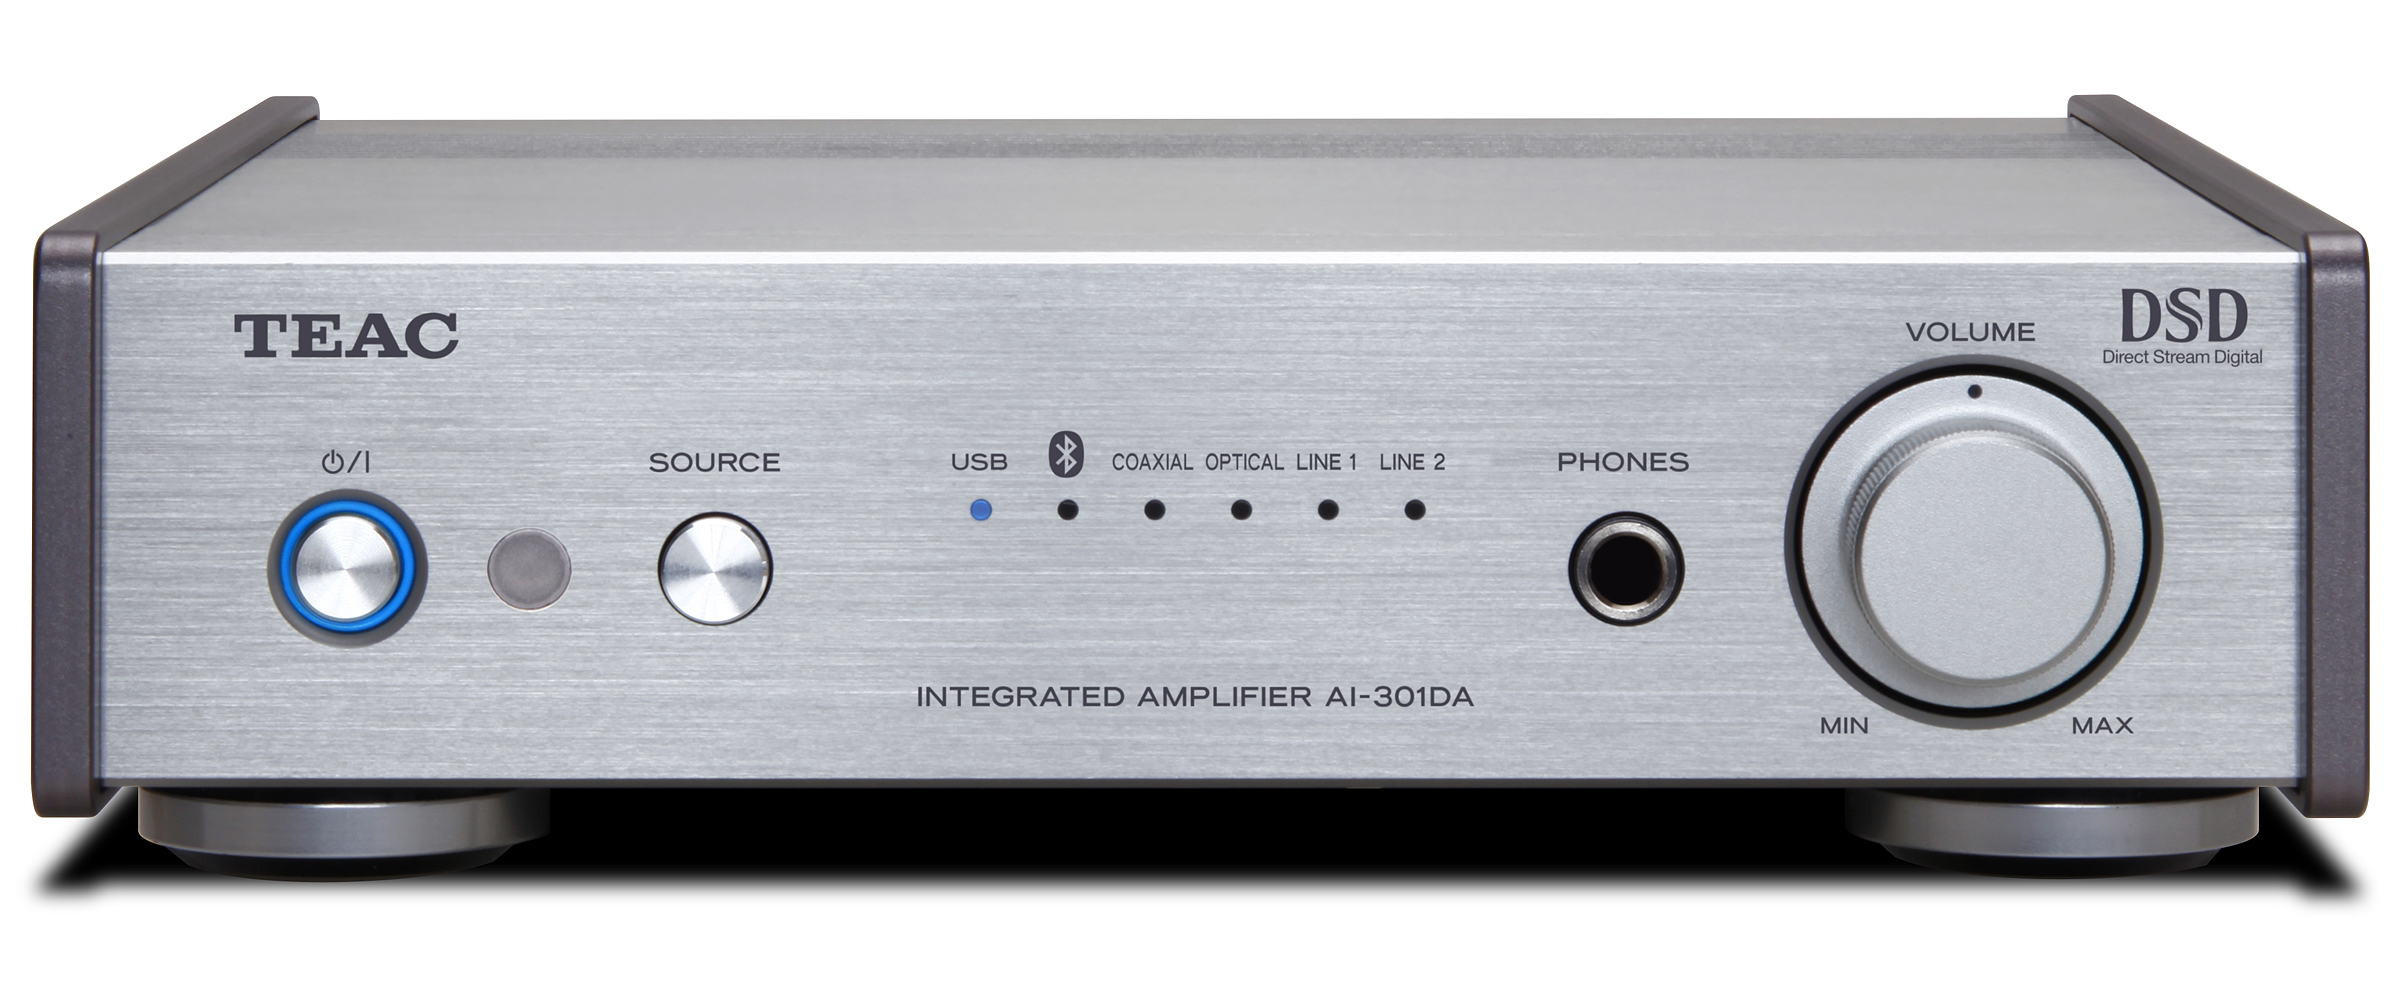 Ai 301da on teac audio amplifier